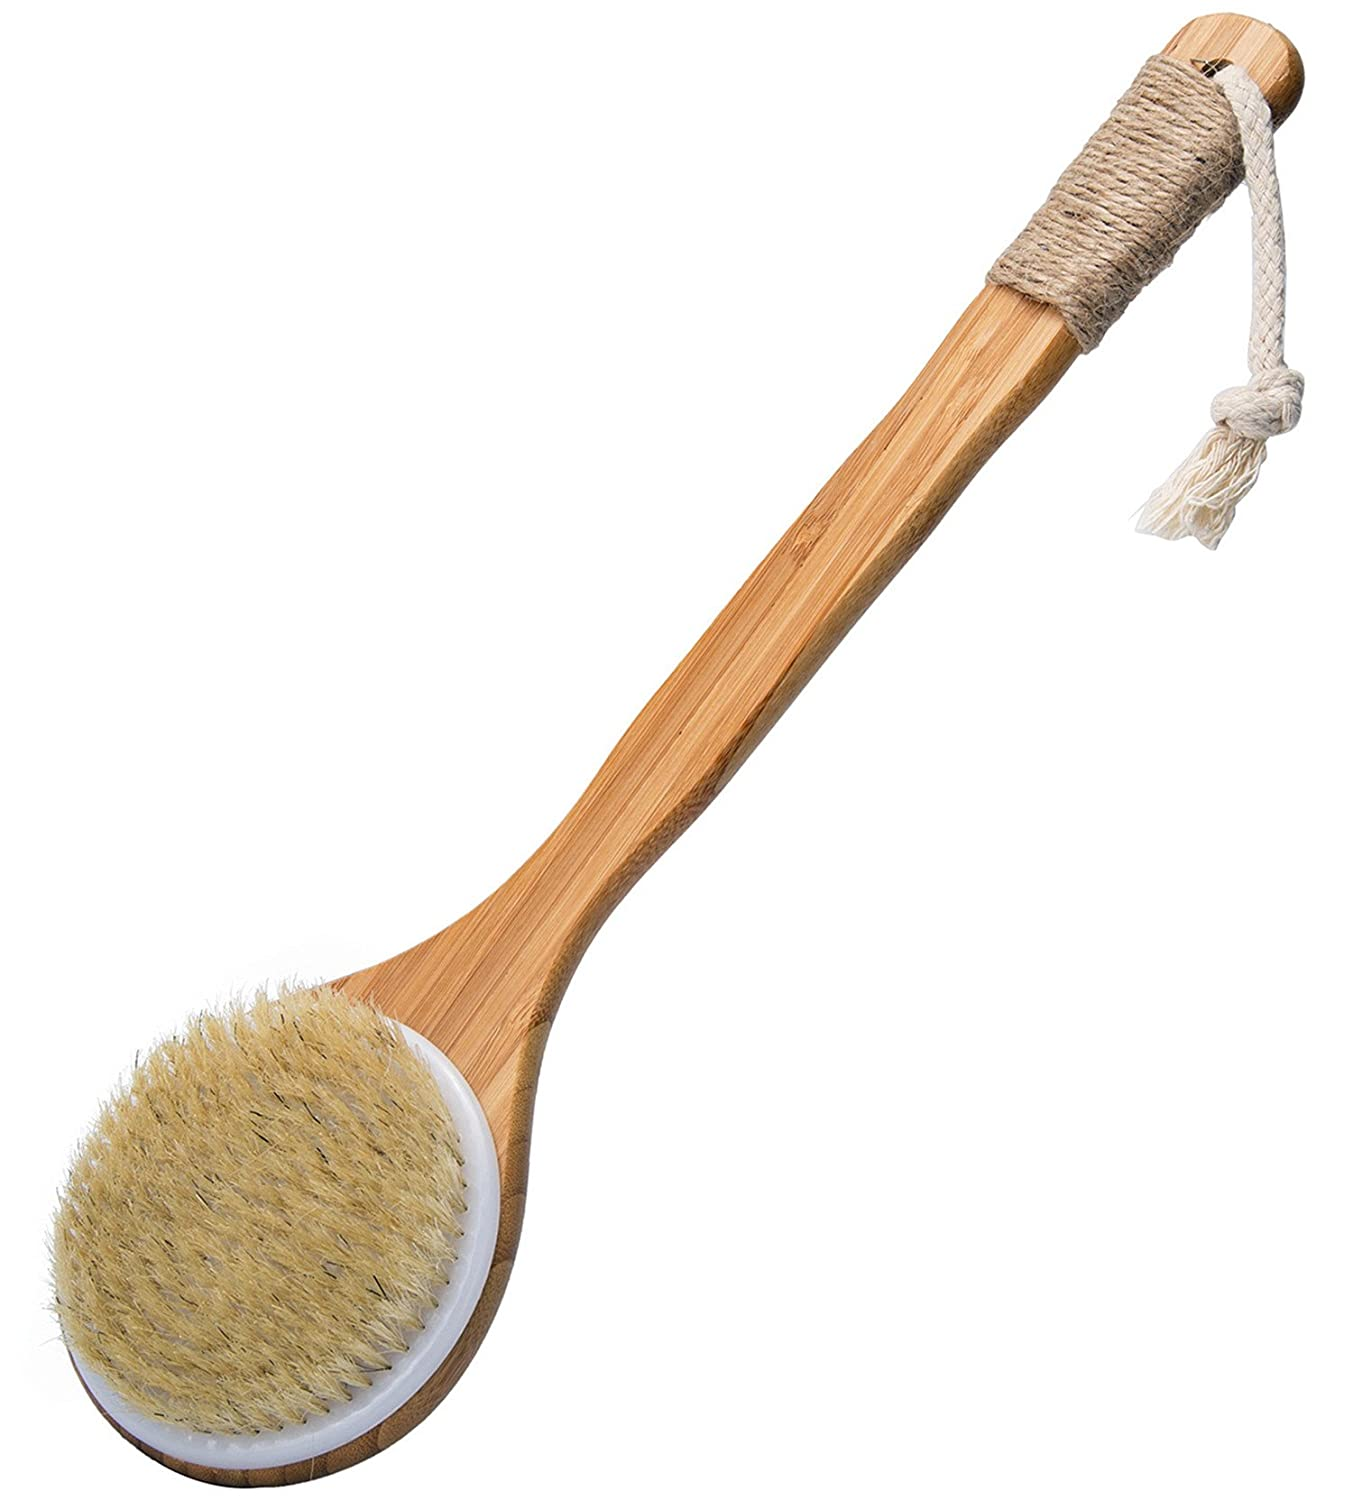 Bath Dry Body Brush-Natural Bristles Back Scrubber With Long Wooden Handle for Cellulite & Exfoliating by Yolika